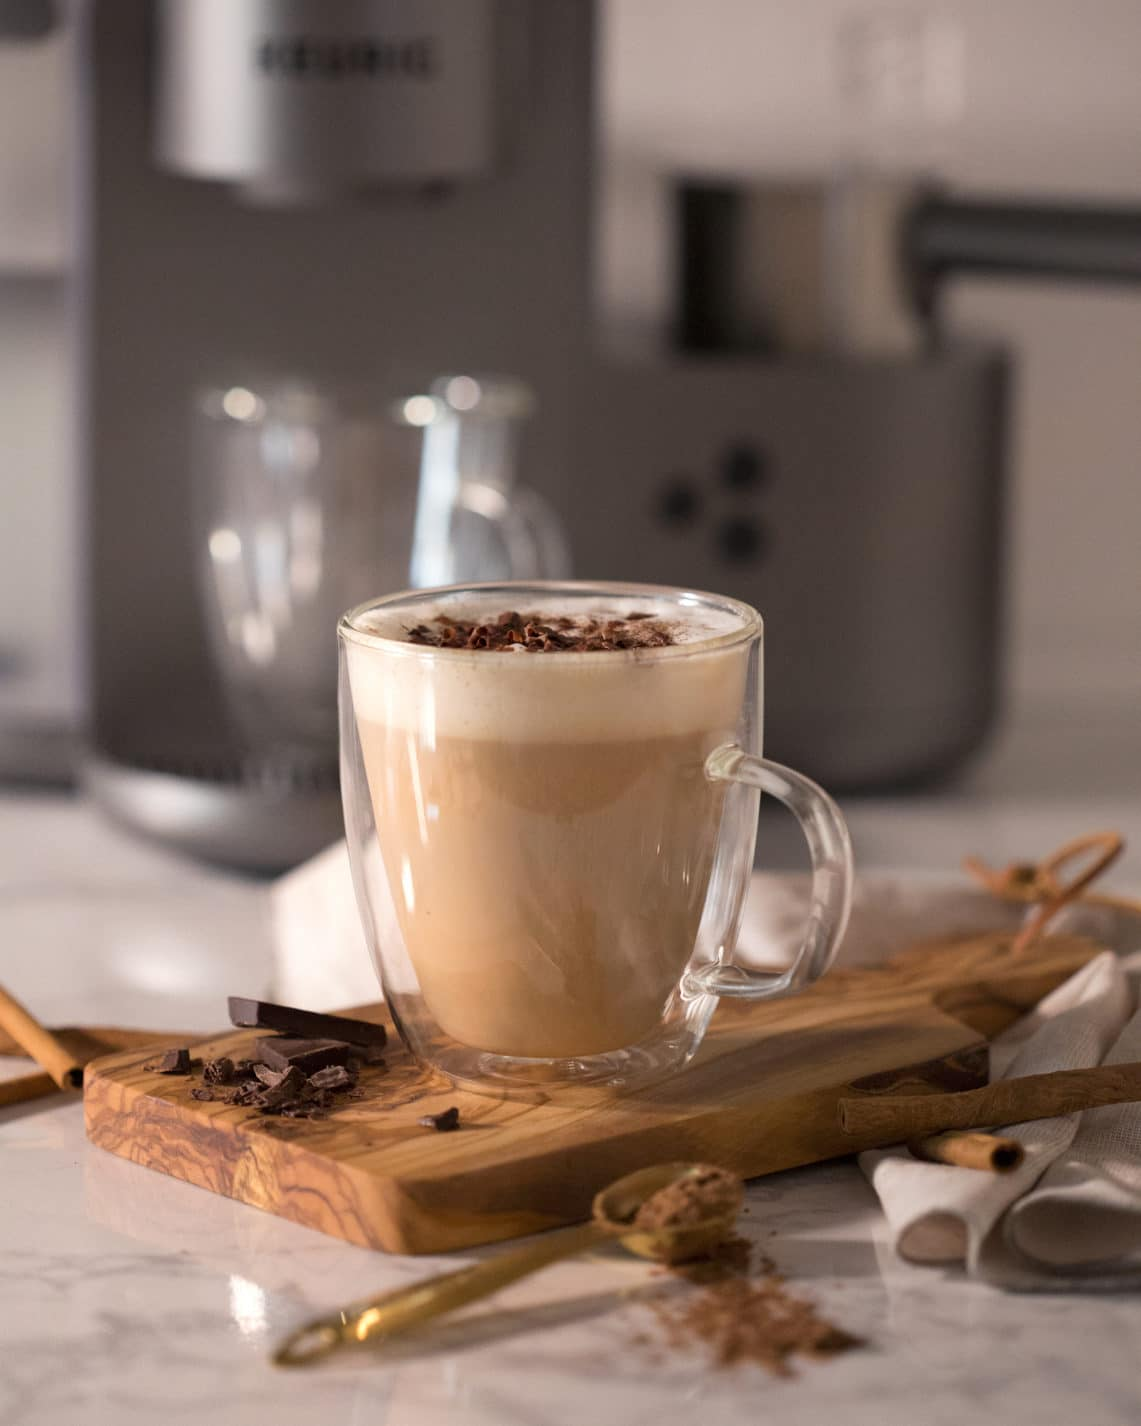 A photo of a Mexican chocolate latte in front of a Keurig